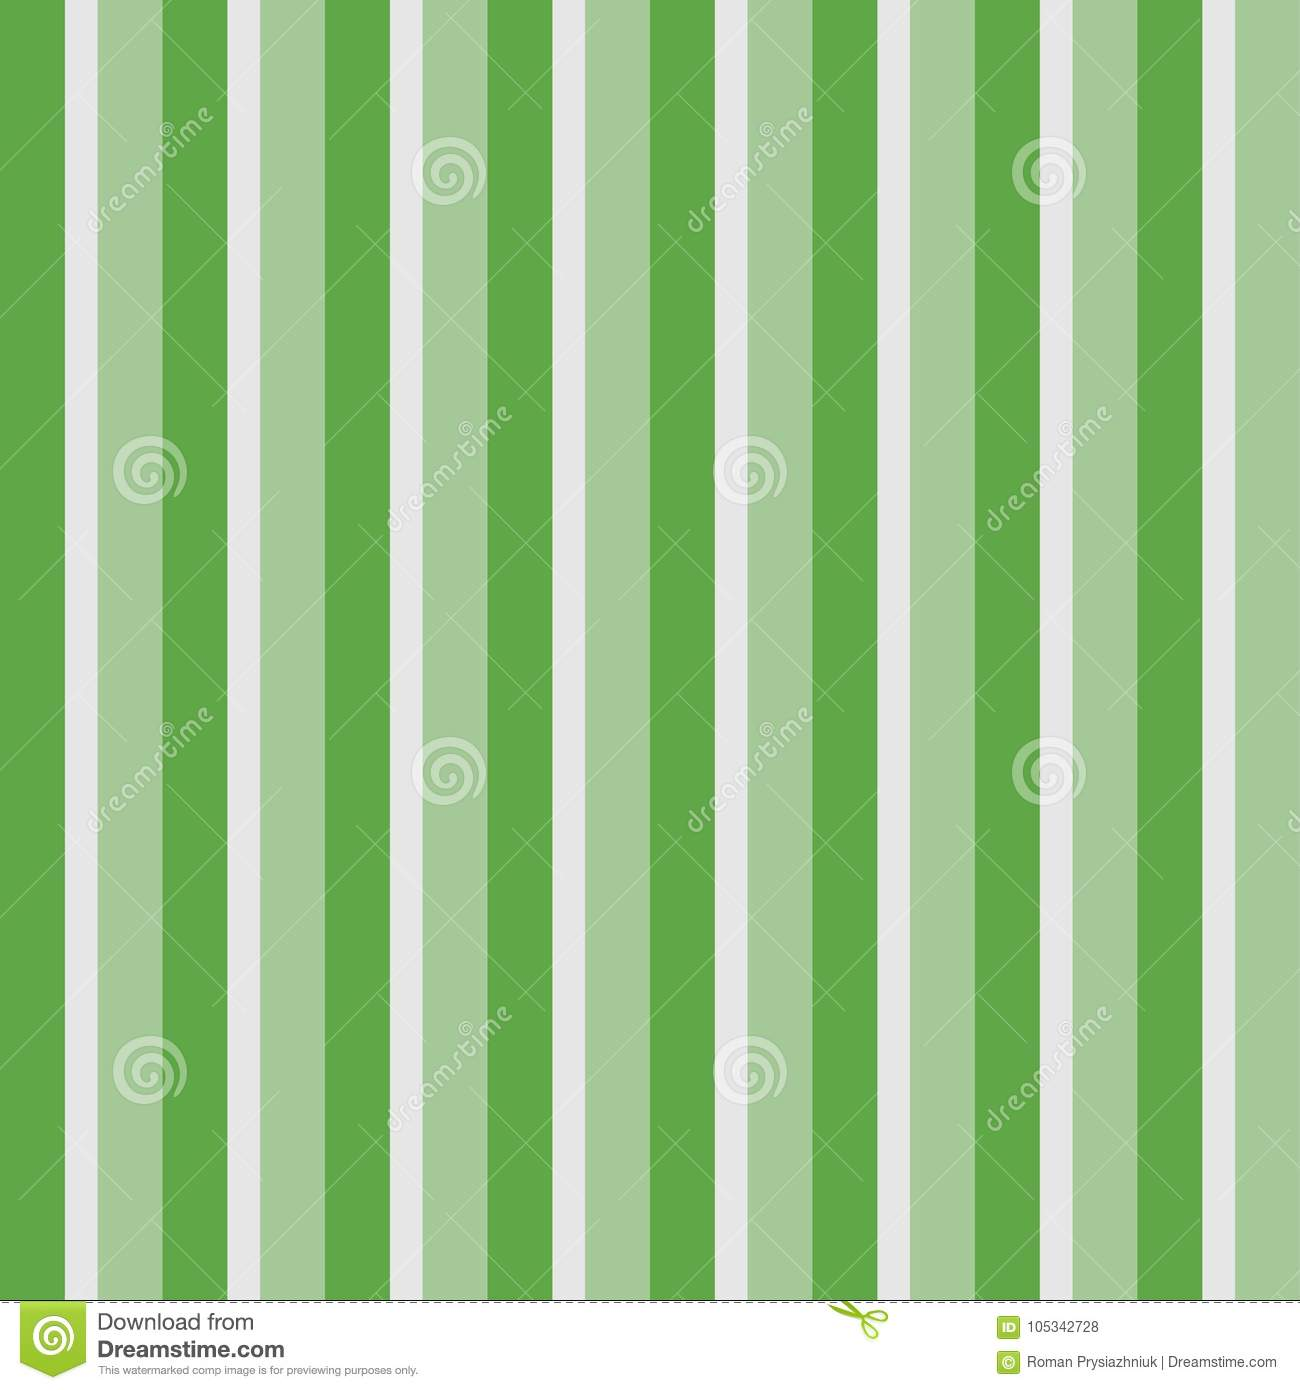 Papel Pintado Rayas Verticales Vertical Stripes Seamless Pattern. Green Striped Wallpaper